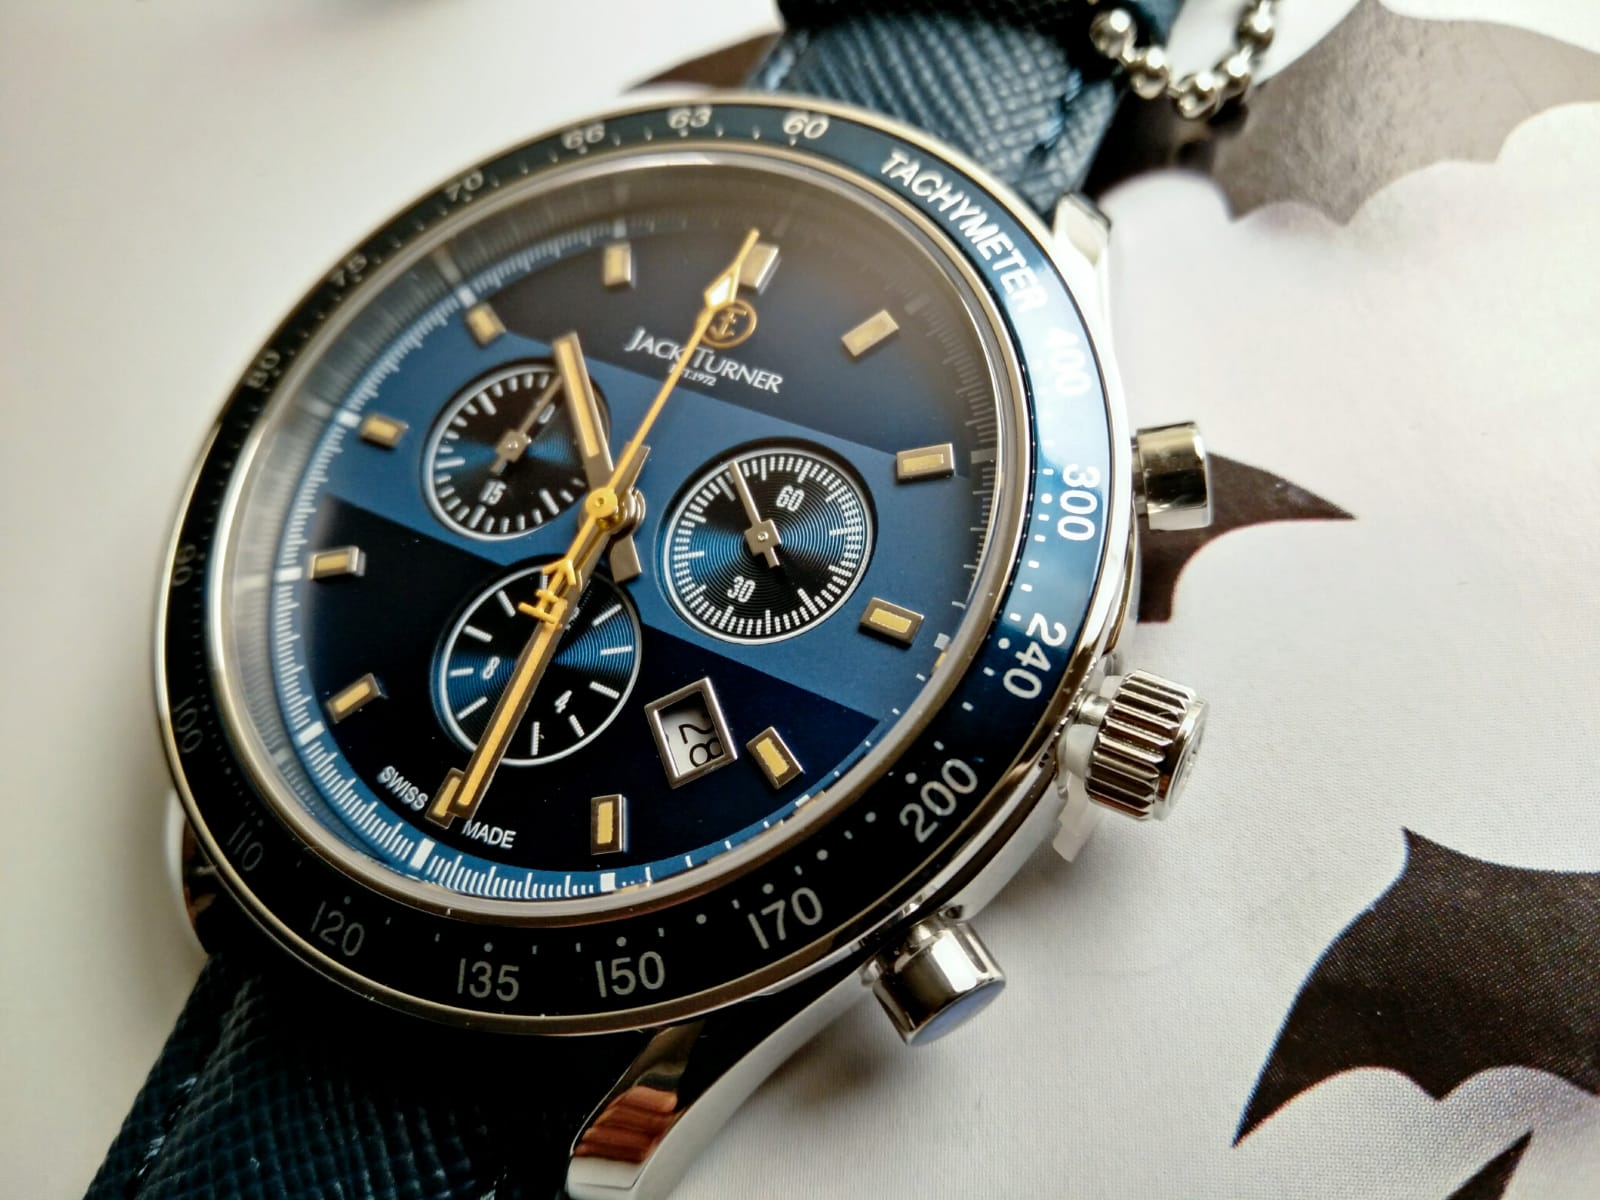 Dial Jack Turner Sports Chronograph